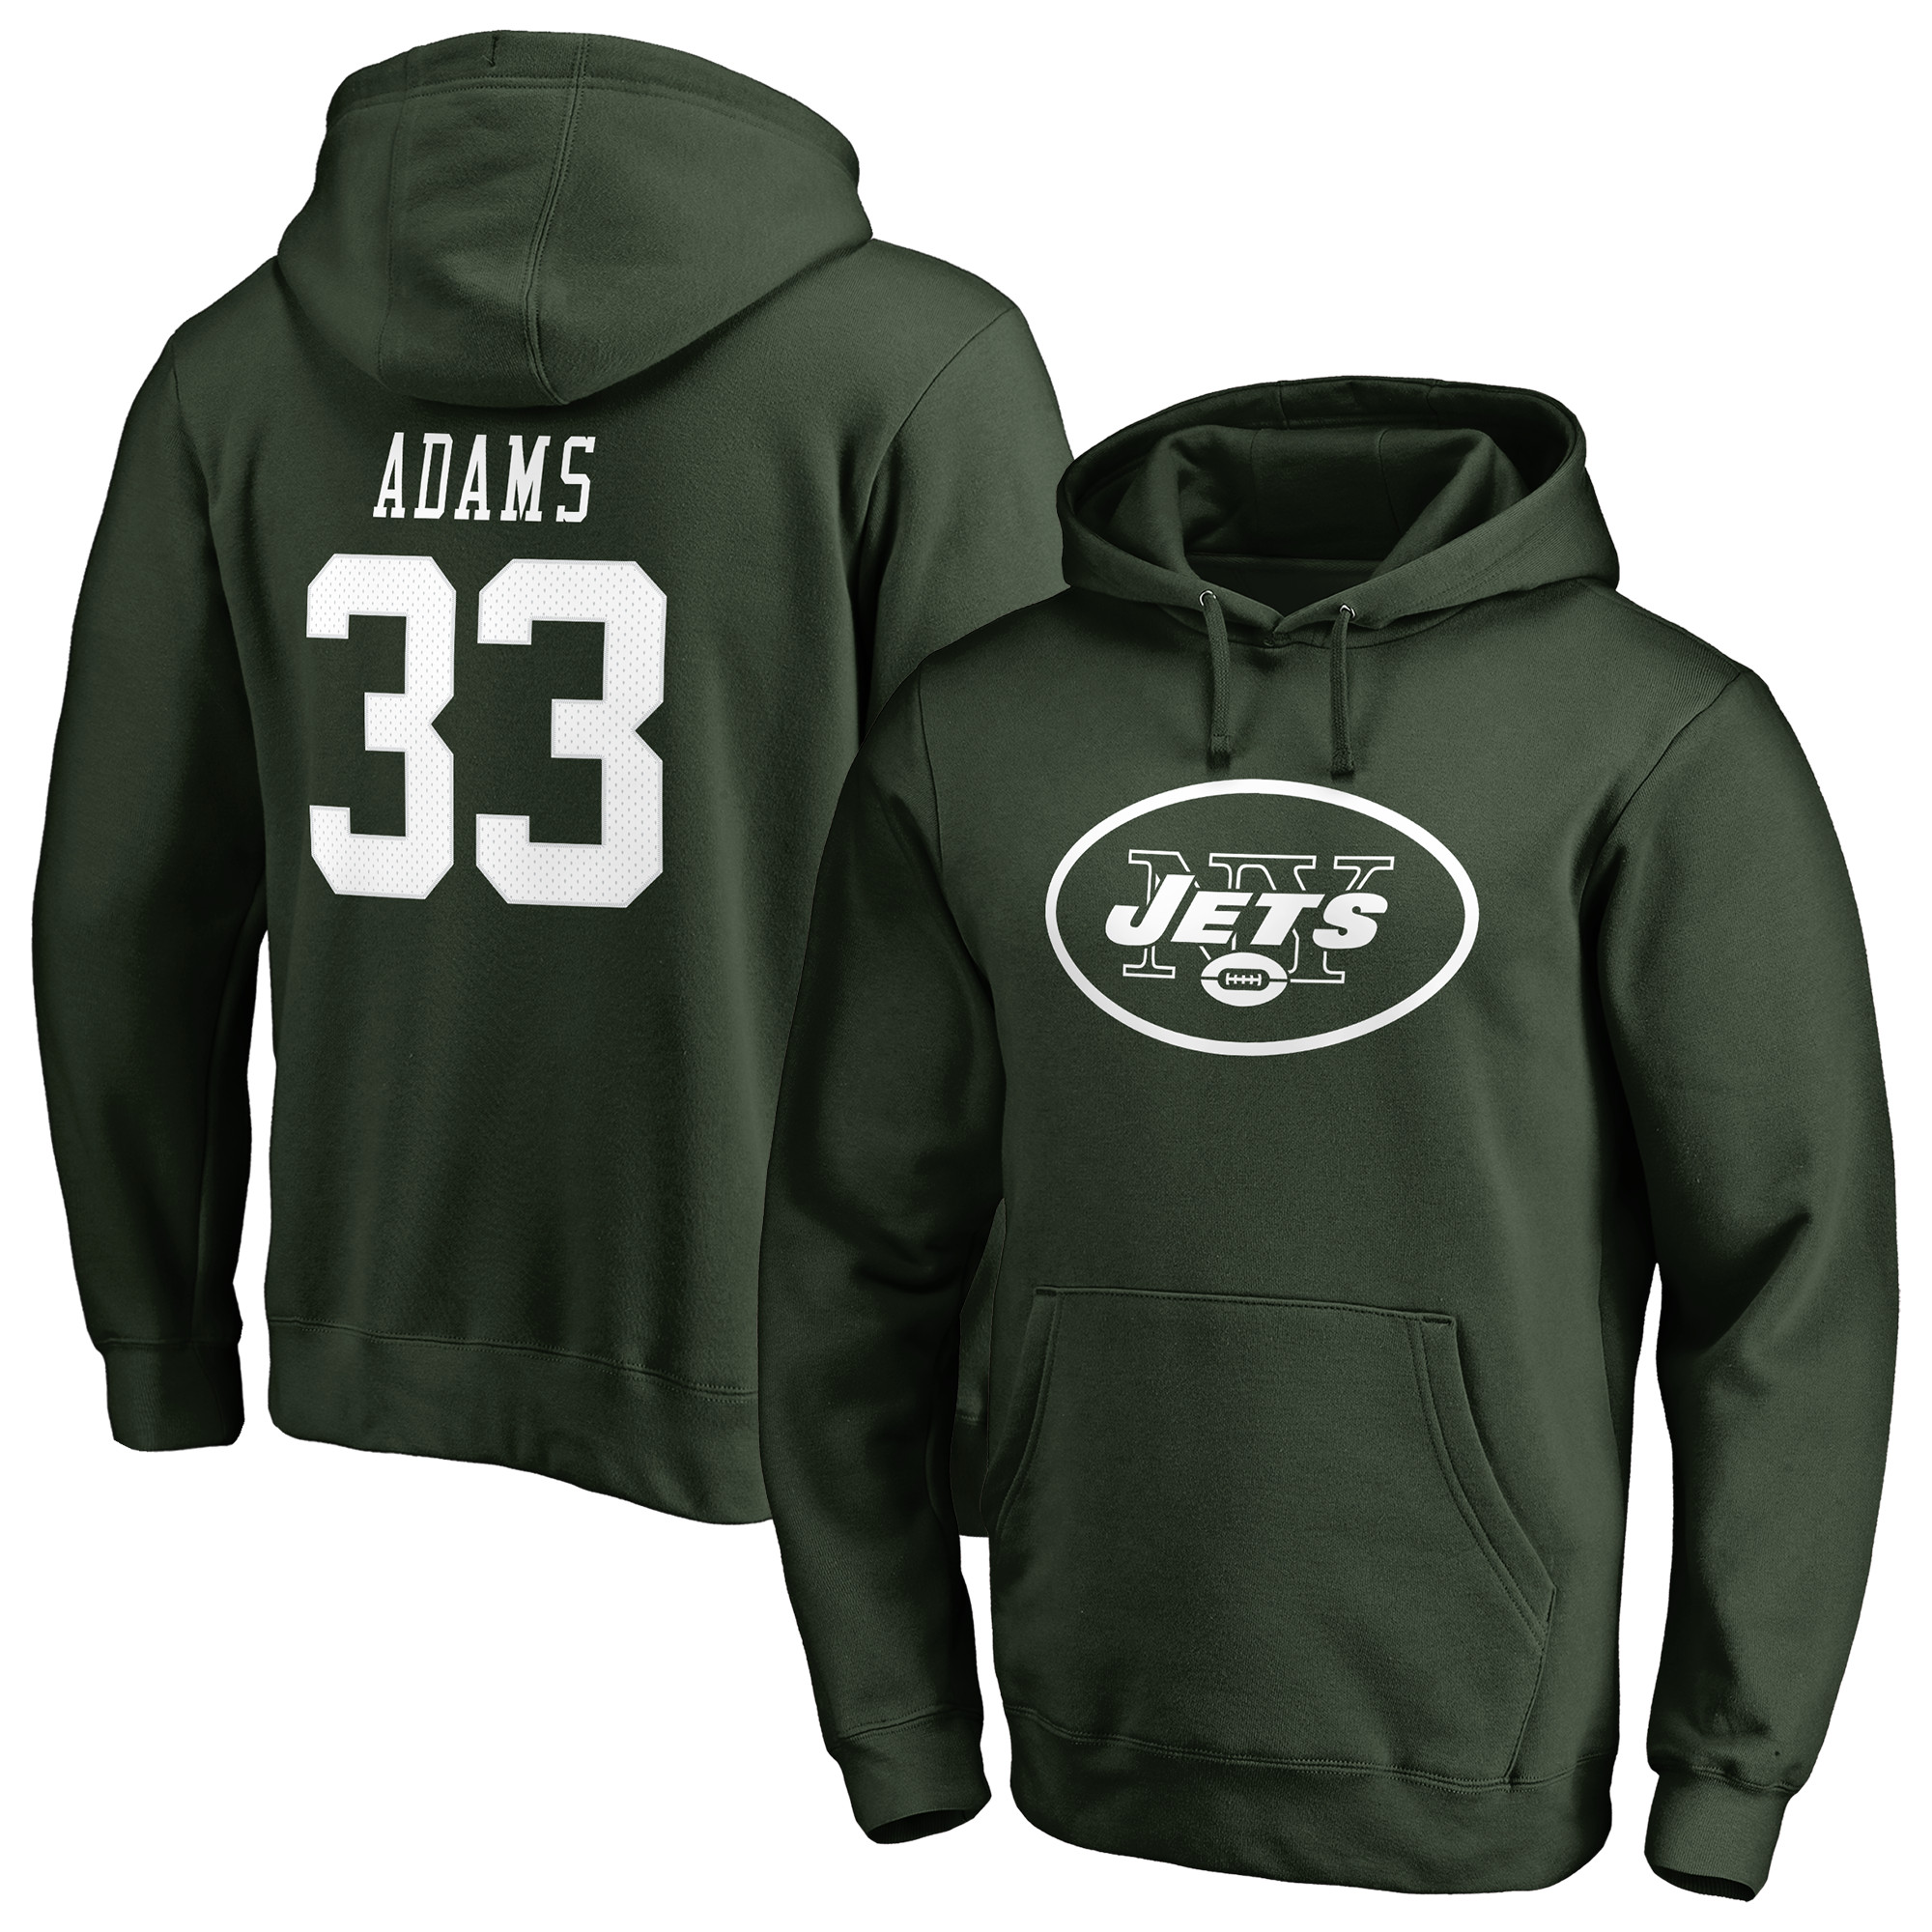 Jamal Adams New York Jets NFL Pro Line by Fanatics Branded Player Icon Name & Number Pullover Hoodie - Green